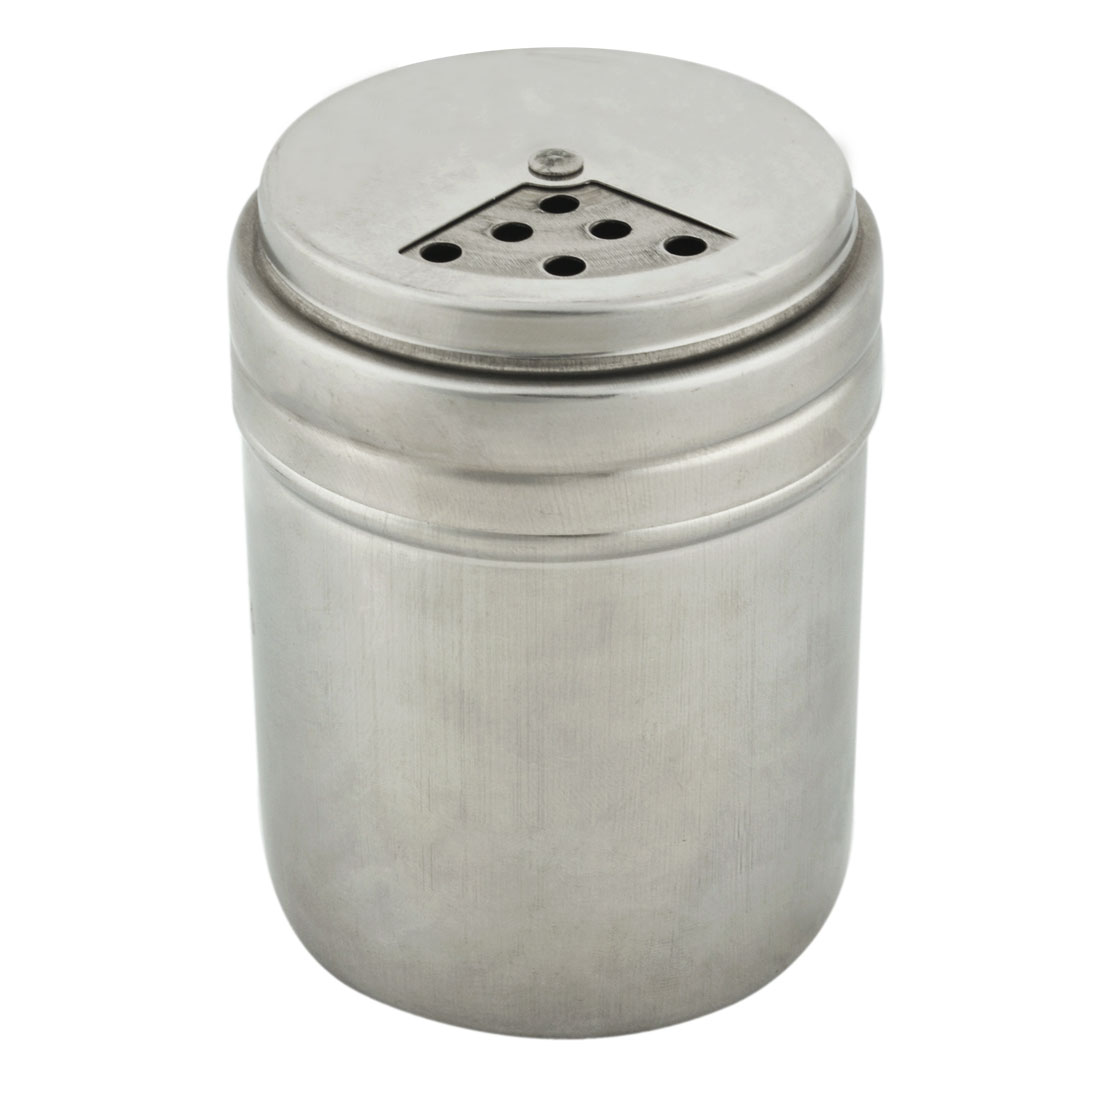 Home Kitchen Stainless Steel Rotatable Lid Cruet Bottle Chili Powder Holder Silver Tone